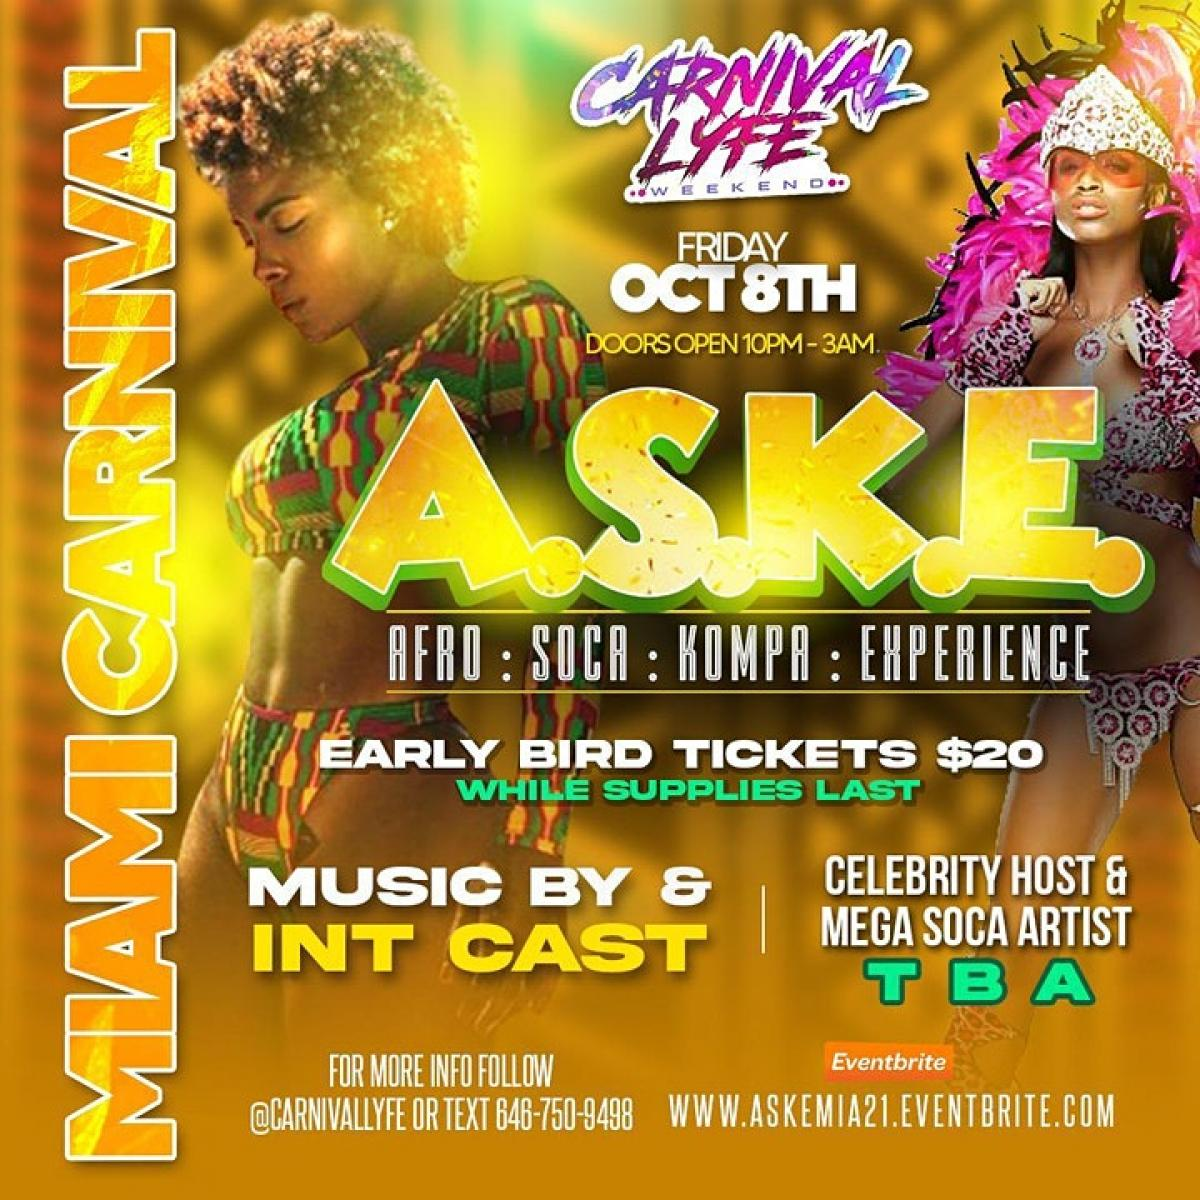 A.S.K.E - Afro | Soca | Kompa | Experience Glow Edition flyer or graphic.